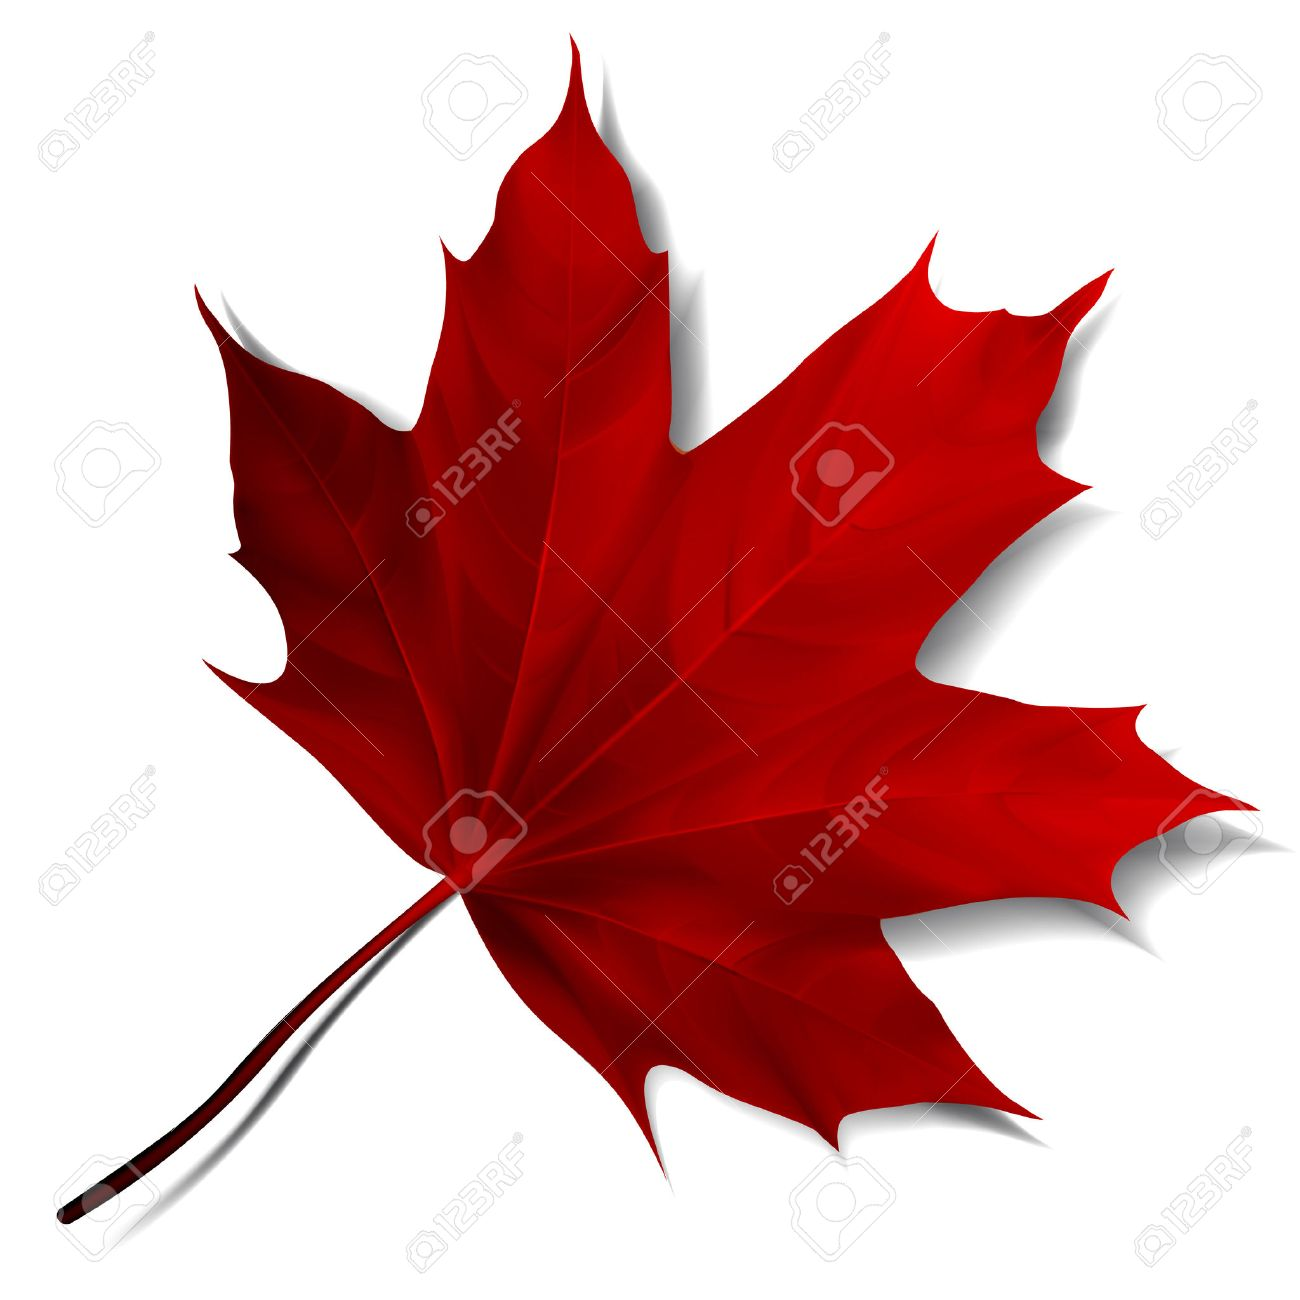 Realistic red maple leaf isolated on white background. - 46395717